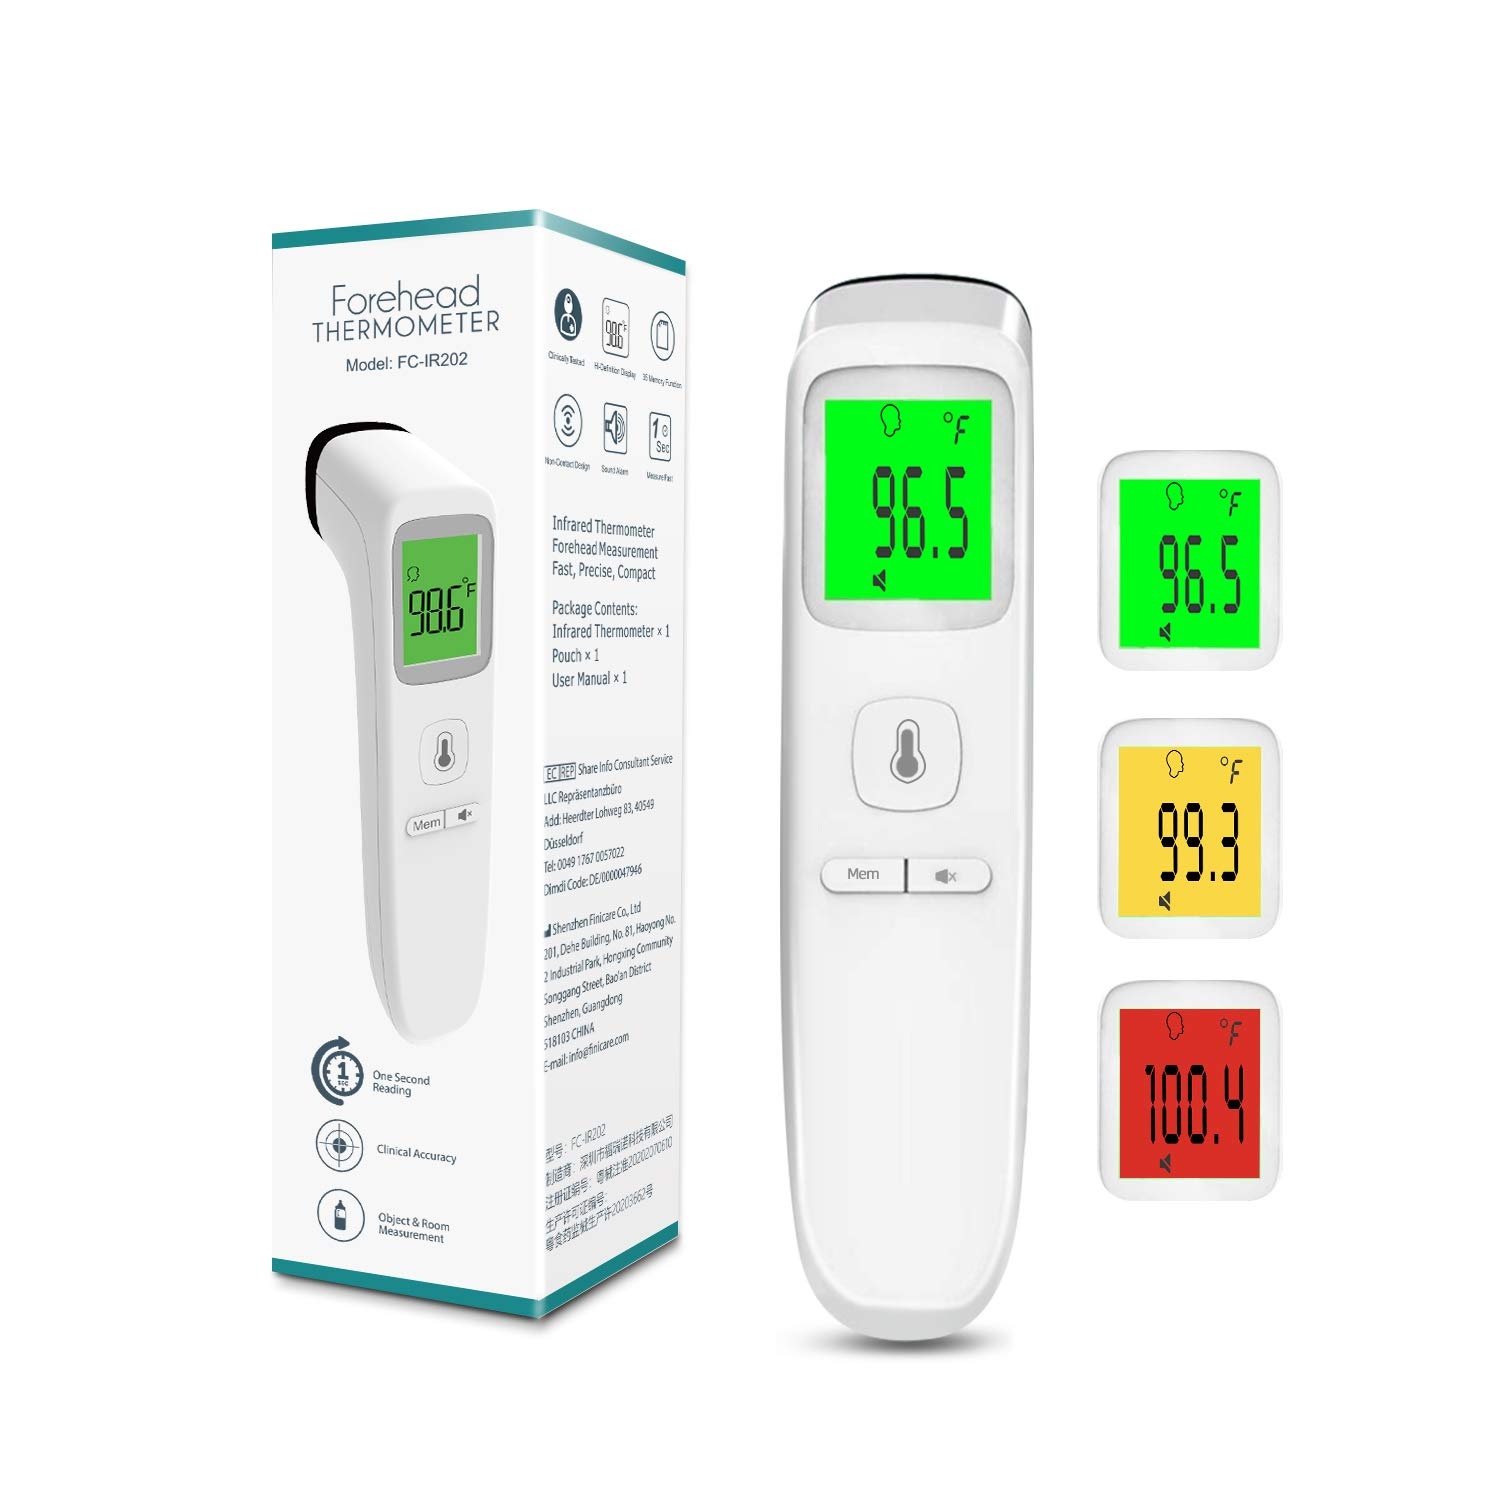 XDX Thermometer for Adults Forehead, No Touch Thermometer with Fever Alarm and Memory Ideal for Babies, Kids, Adults, Indoor Outdoor Medical Use: Industrial & Scientific